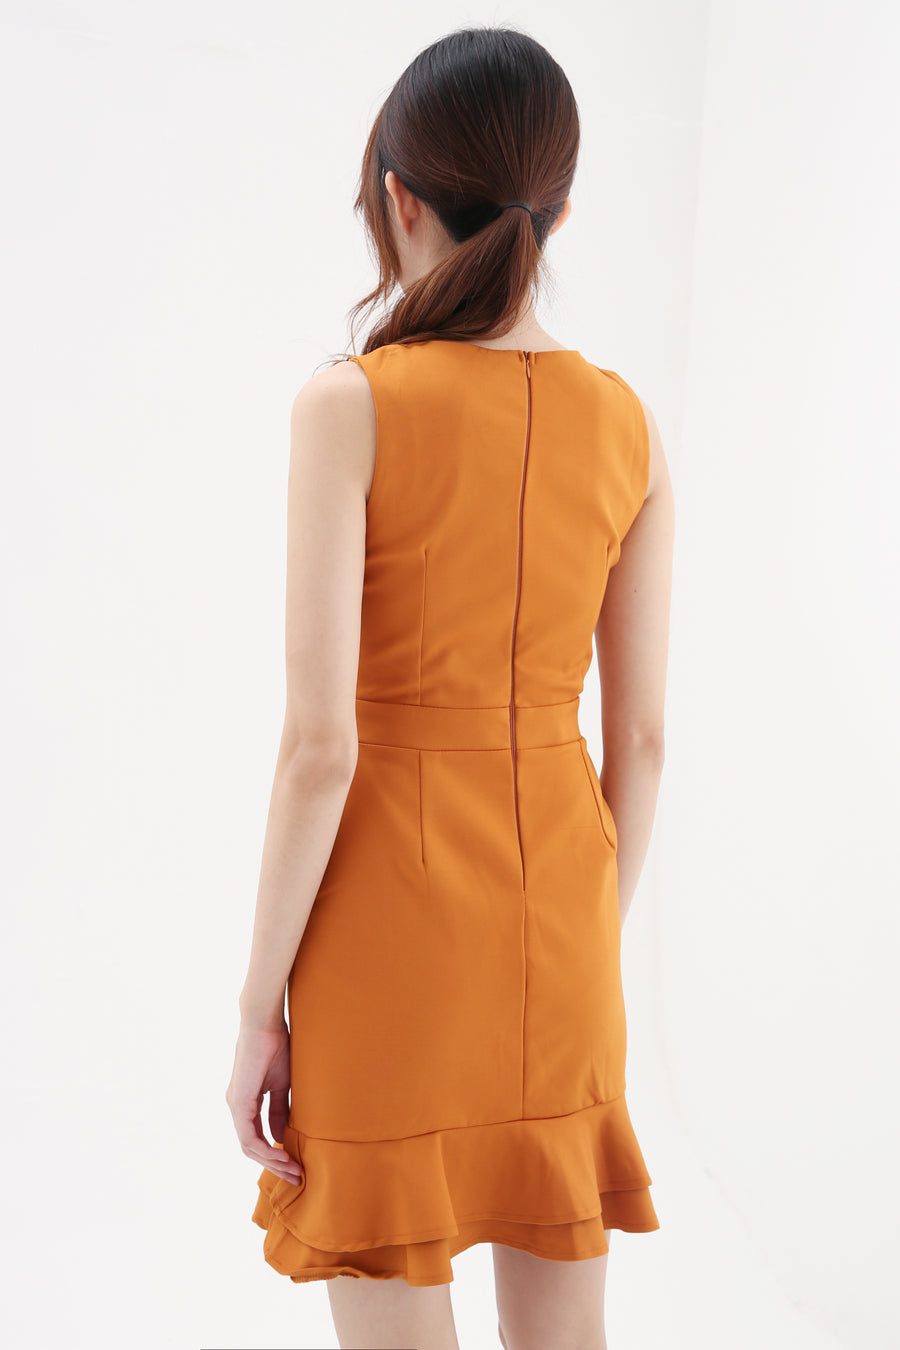 Sleeveless Dress 8281